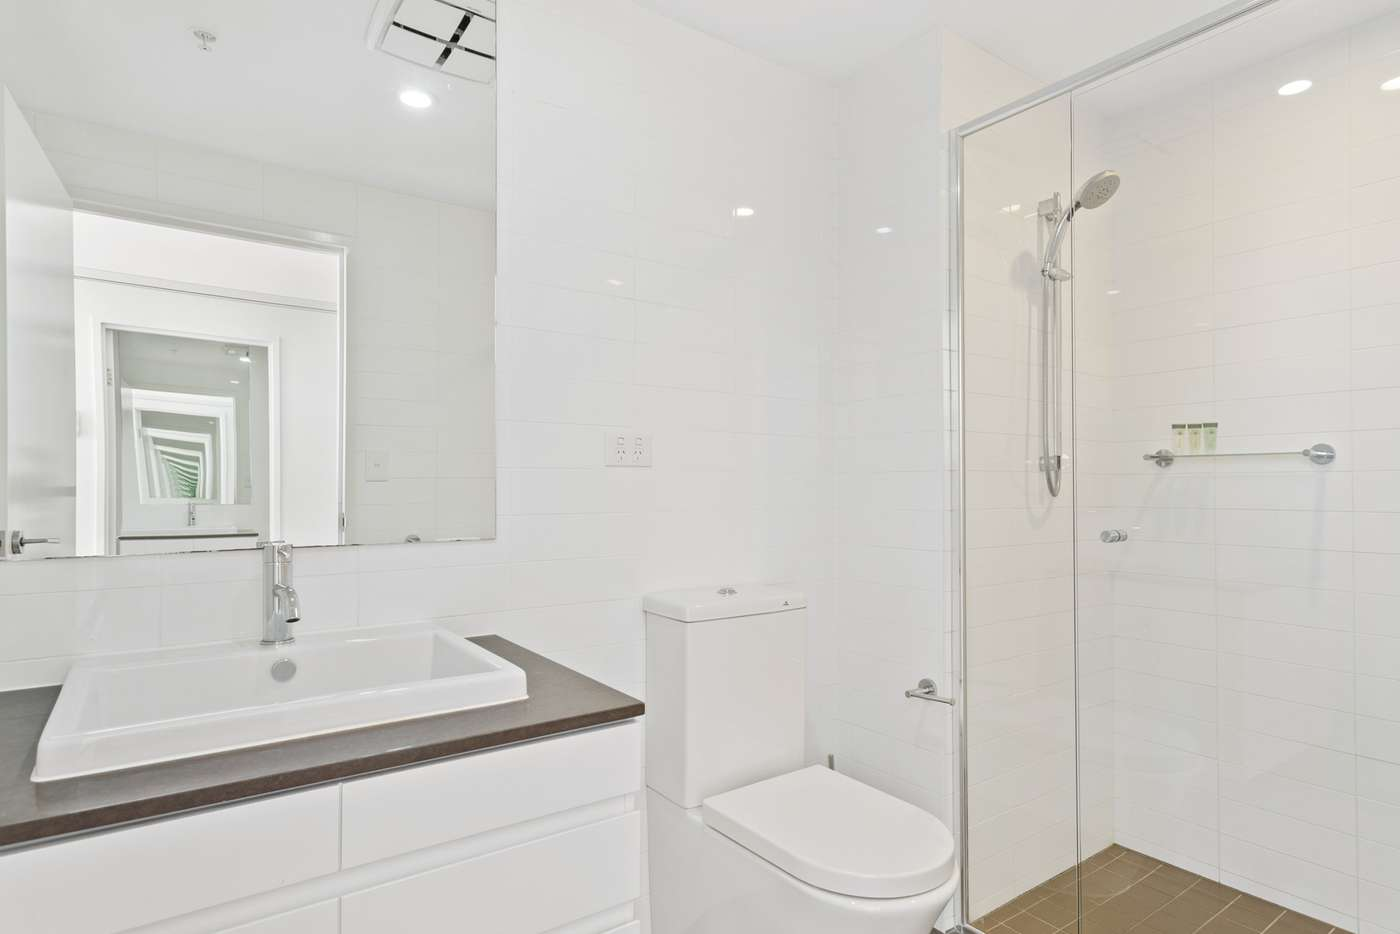 Sixth view of Homely apartment listing, 4014/37c Harbour Road, Hamilton QLD 4007